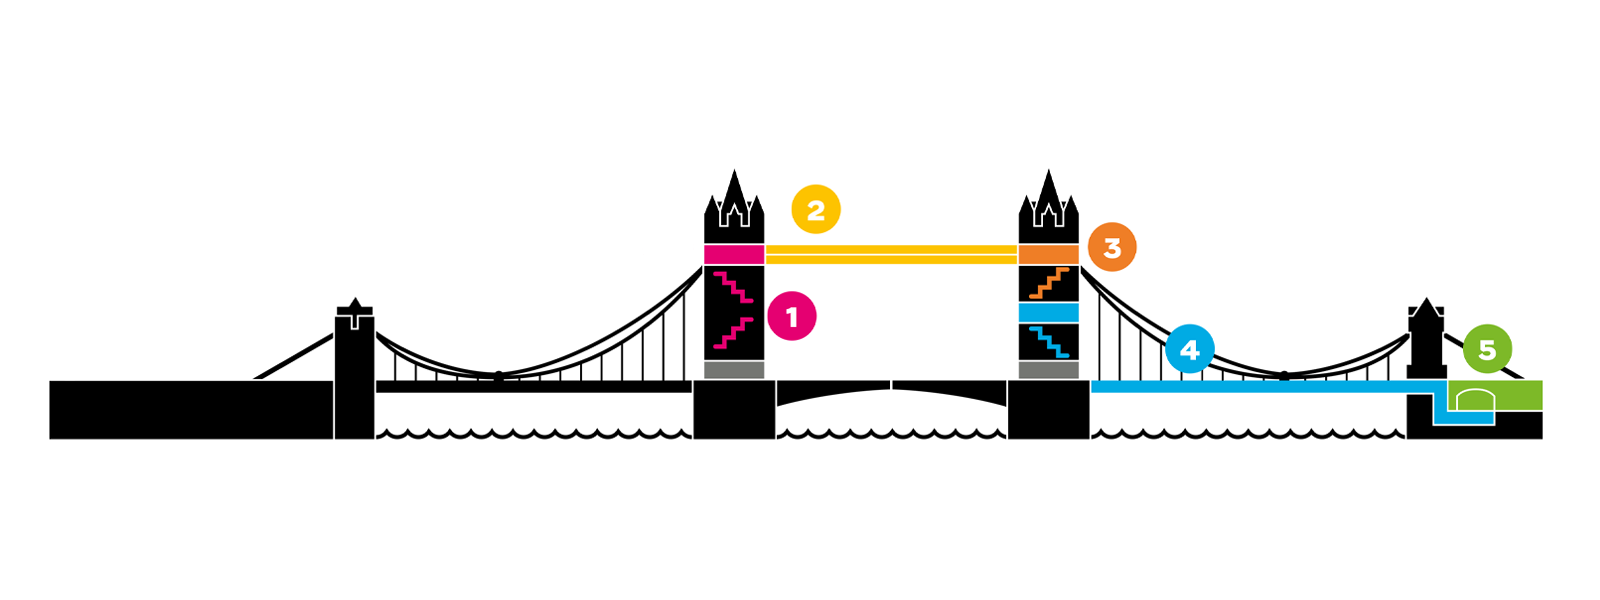 Map showing the visitor journey inside Tower Bridge